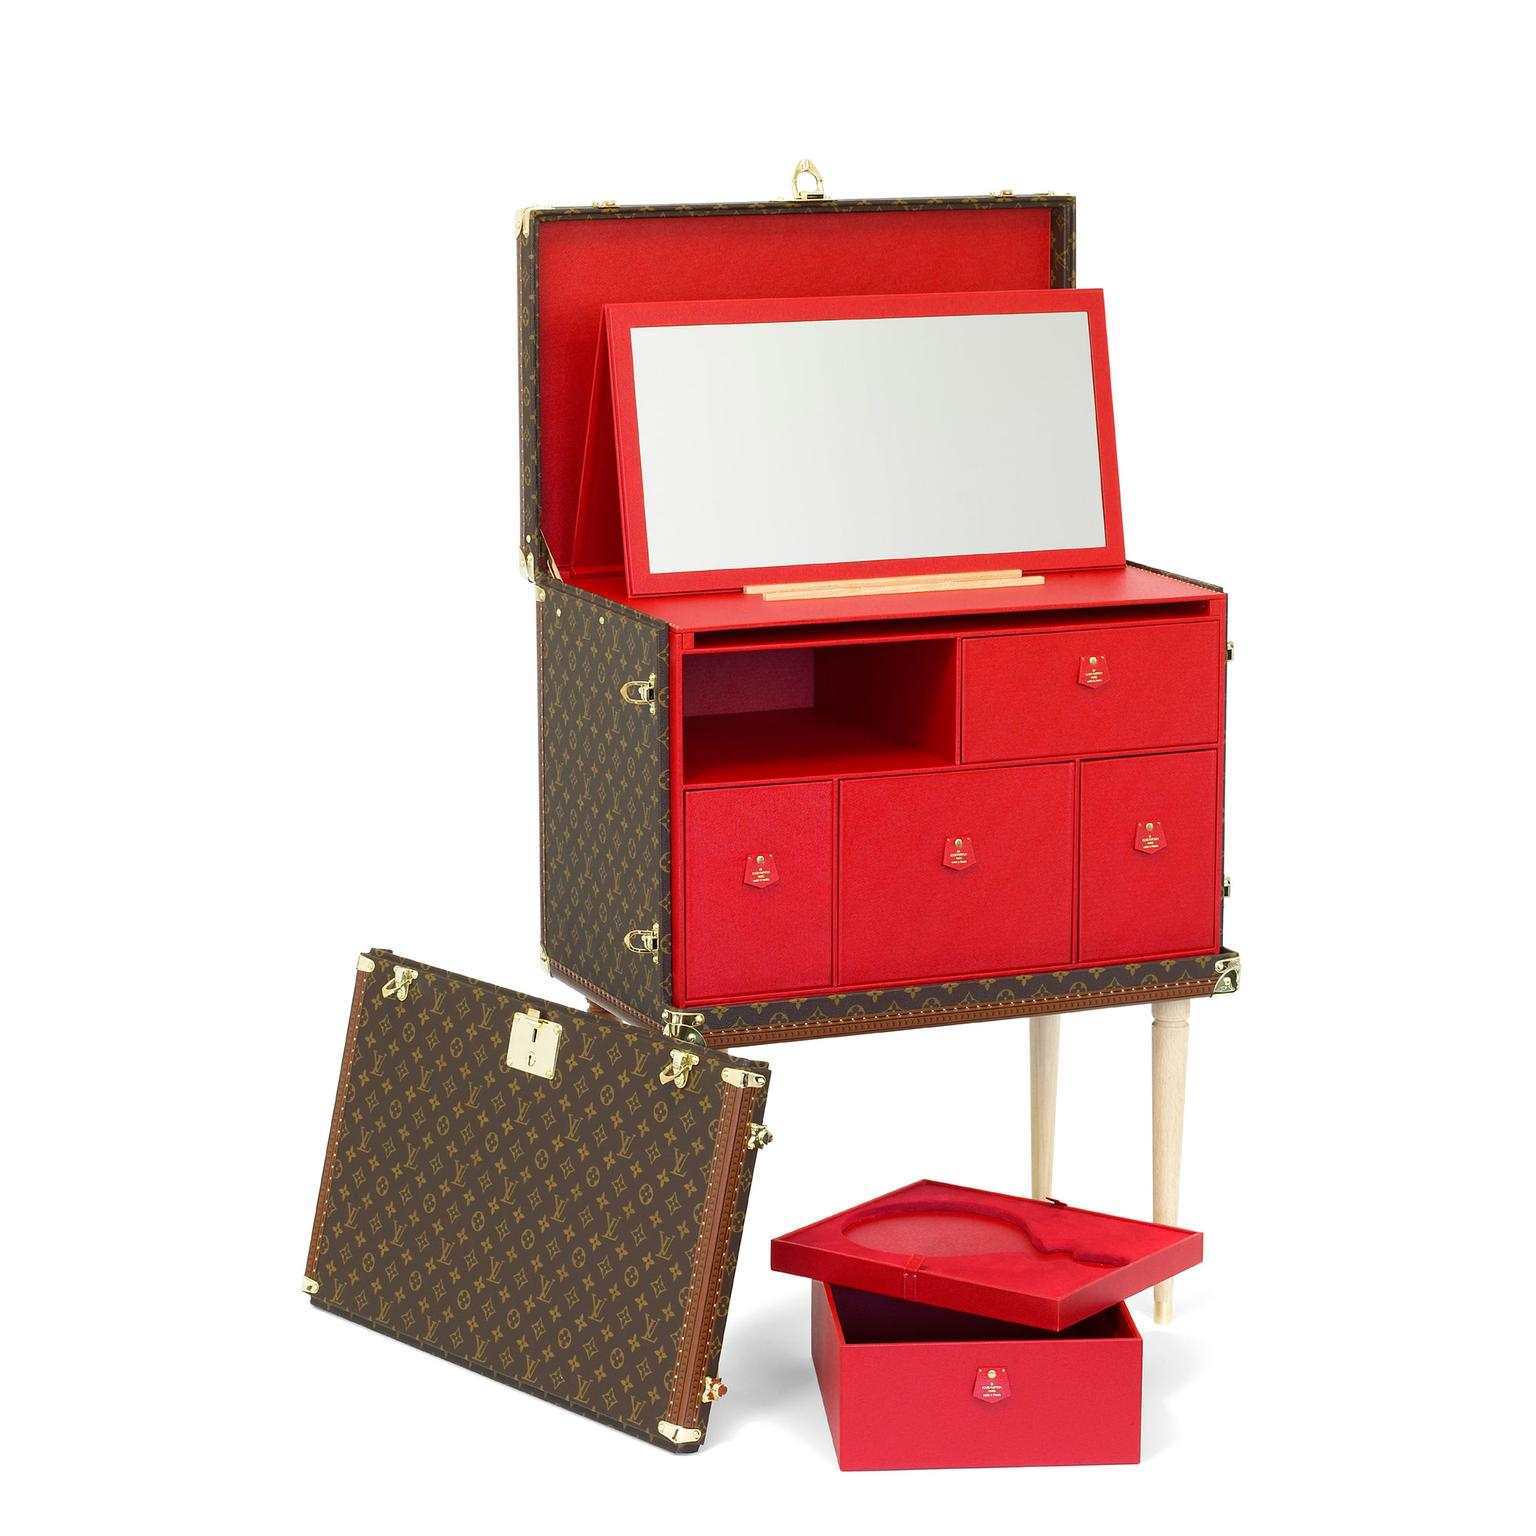 Louis Vuitton Kabuki makeup trunk in red